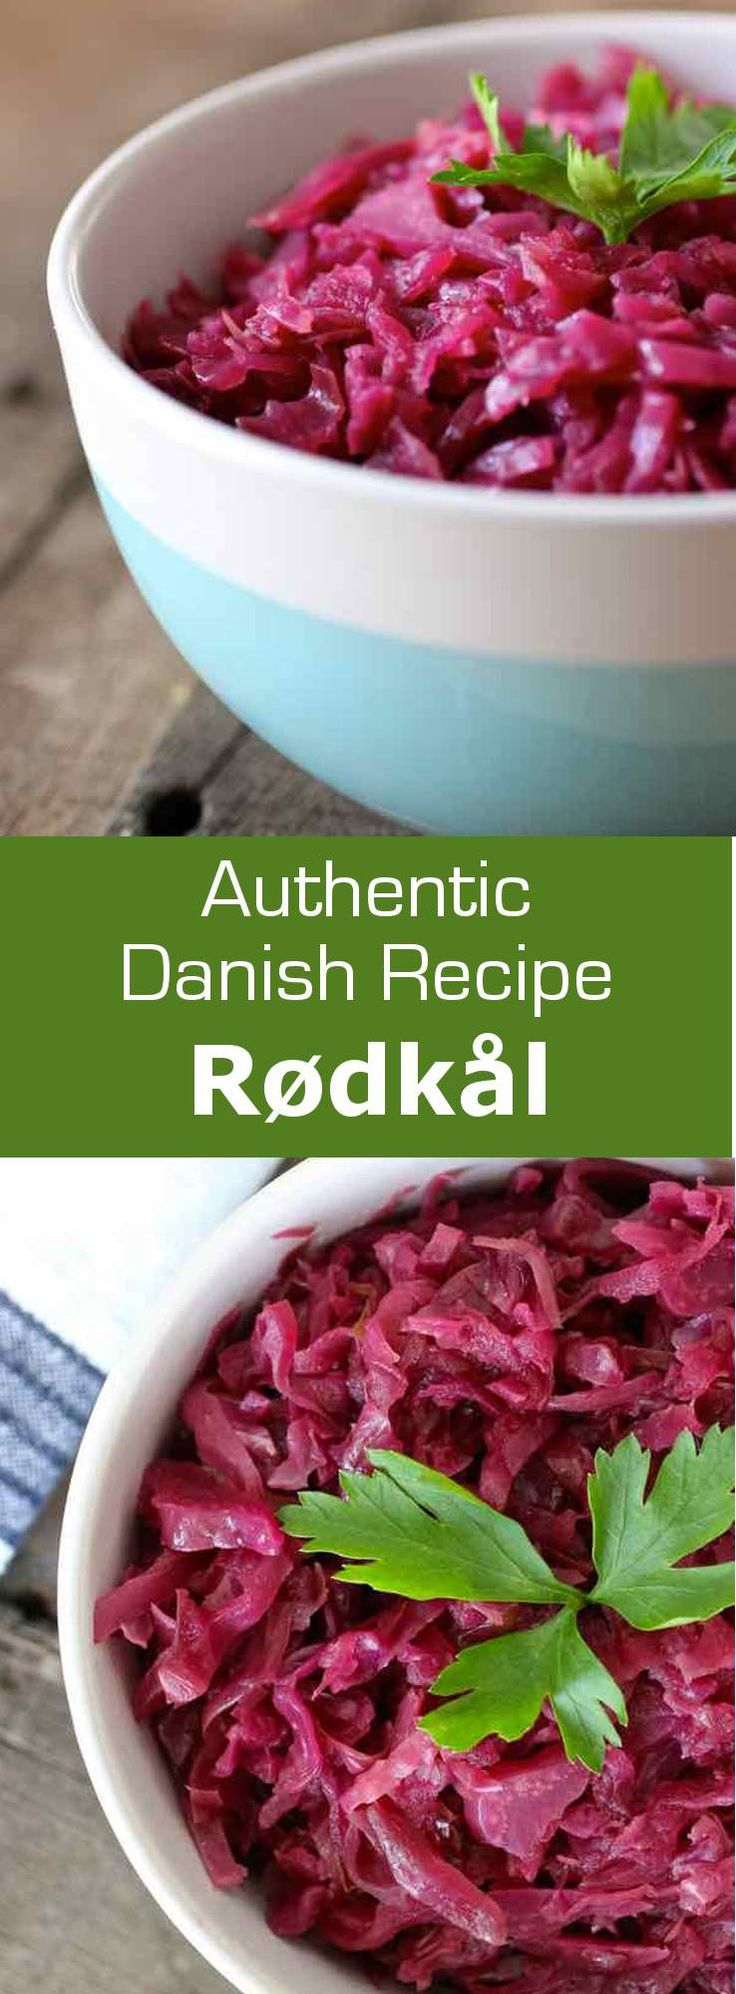 Rødkål is the traditional Danish sweet and sour side dish prepared with red…